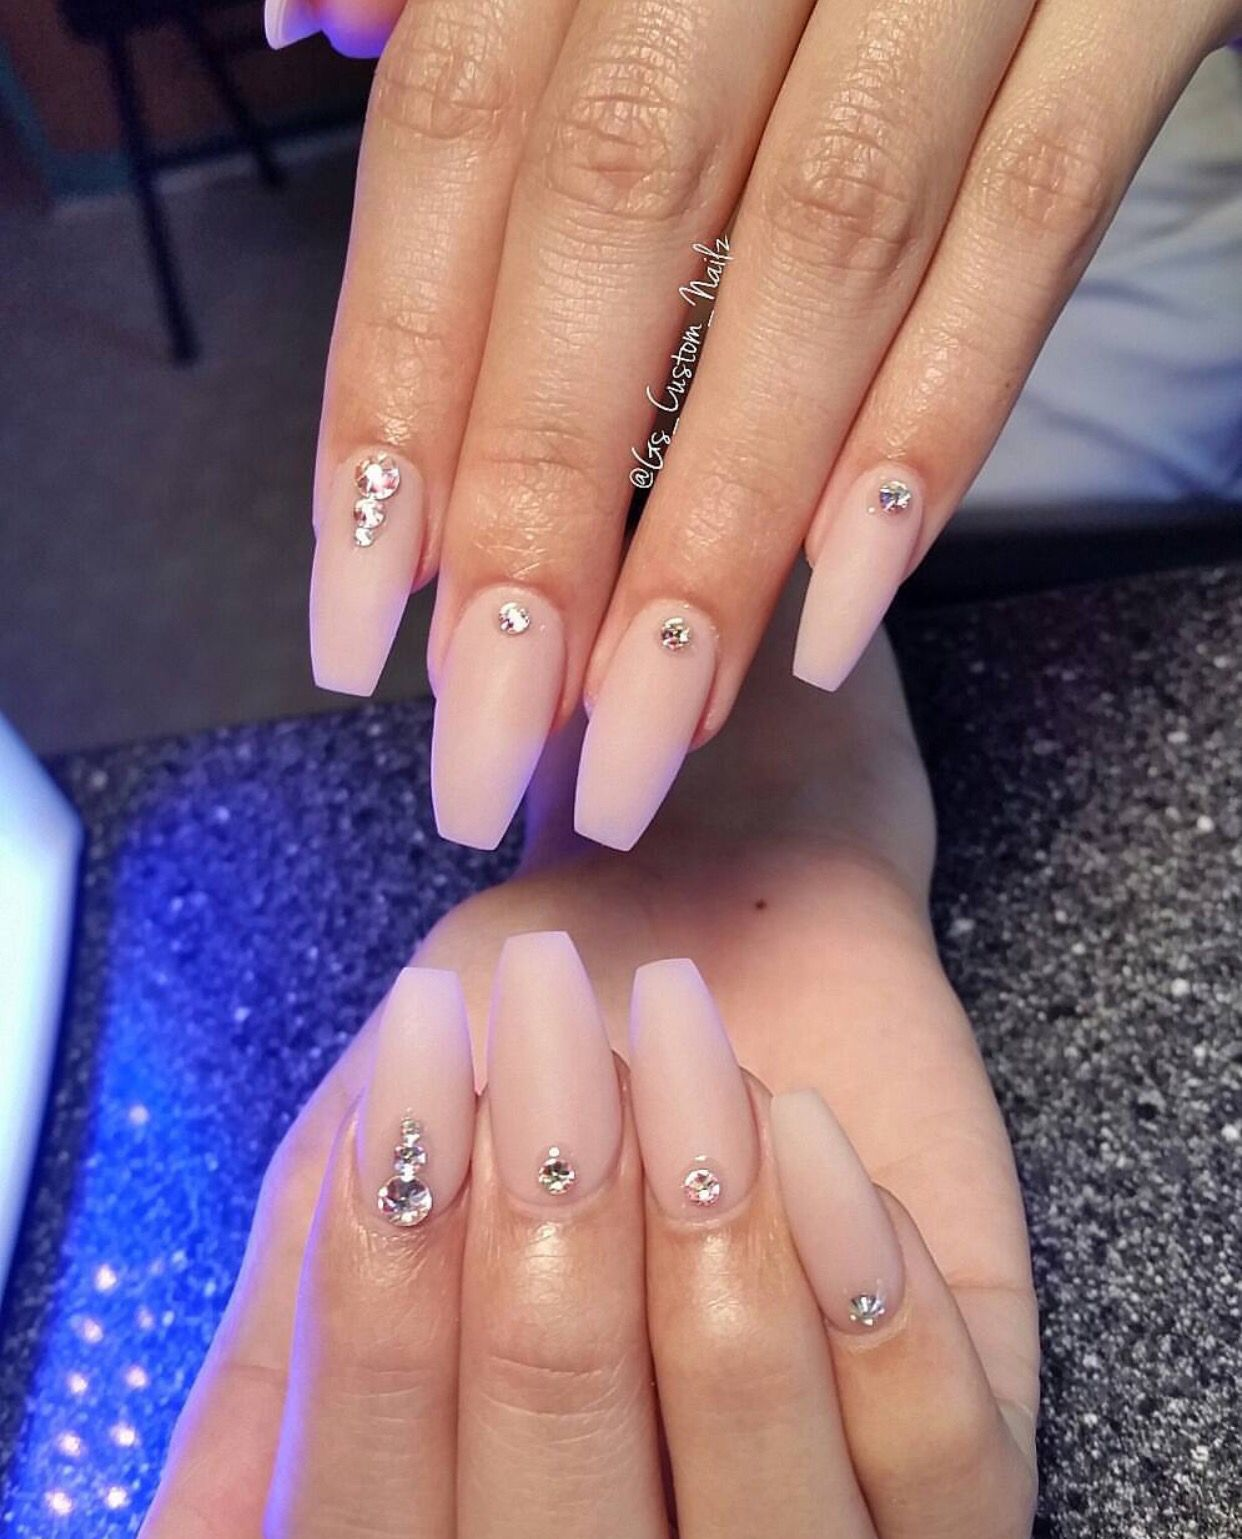 Coffin Nails With Jewel Accents Rhinestone Nails Nail Jewels Simple Acrylic Nails